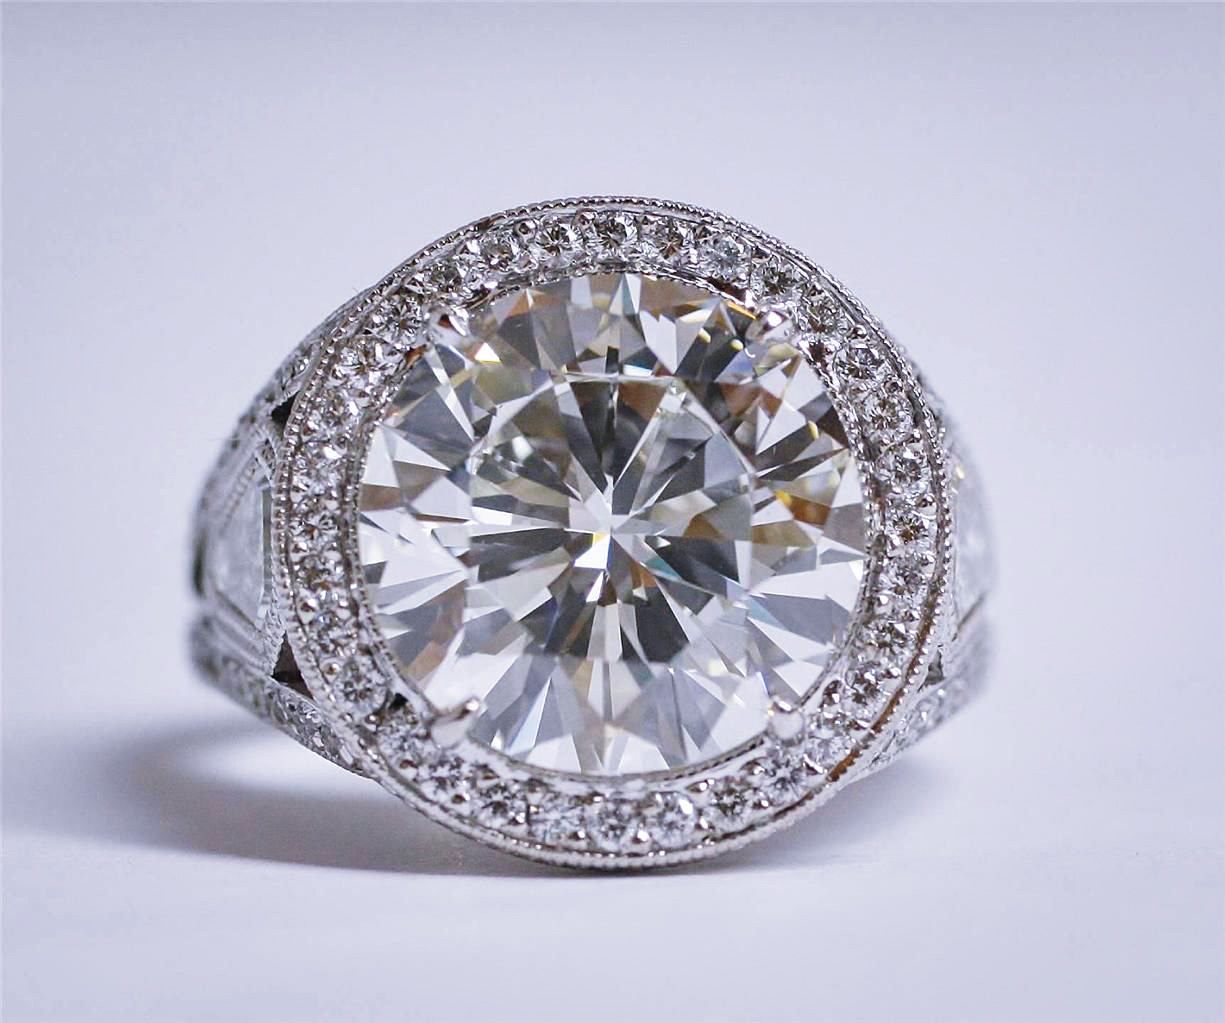 Large Diamond Ring (5 Cts.)